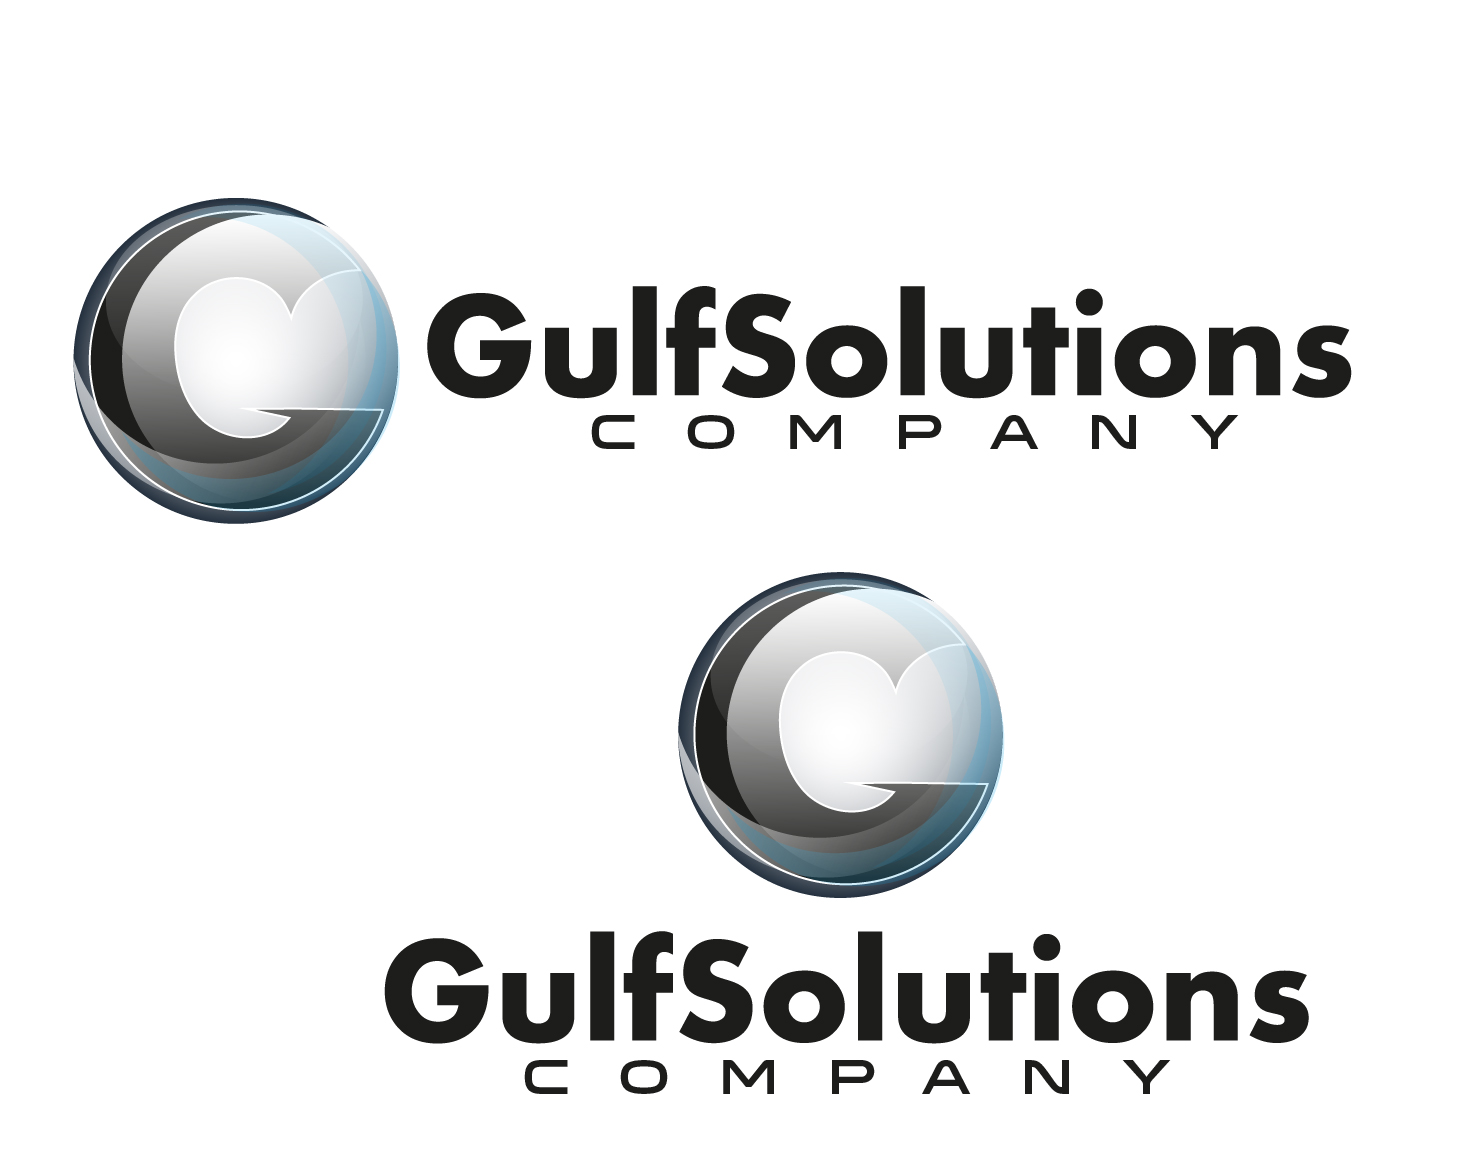 Logo Design by VENTSISLAV KOVACHEV - Entry No. 43 in the Logo Design Contest New Logo Design for Gulf solutions company.